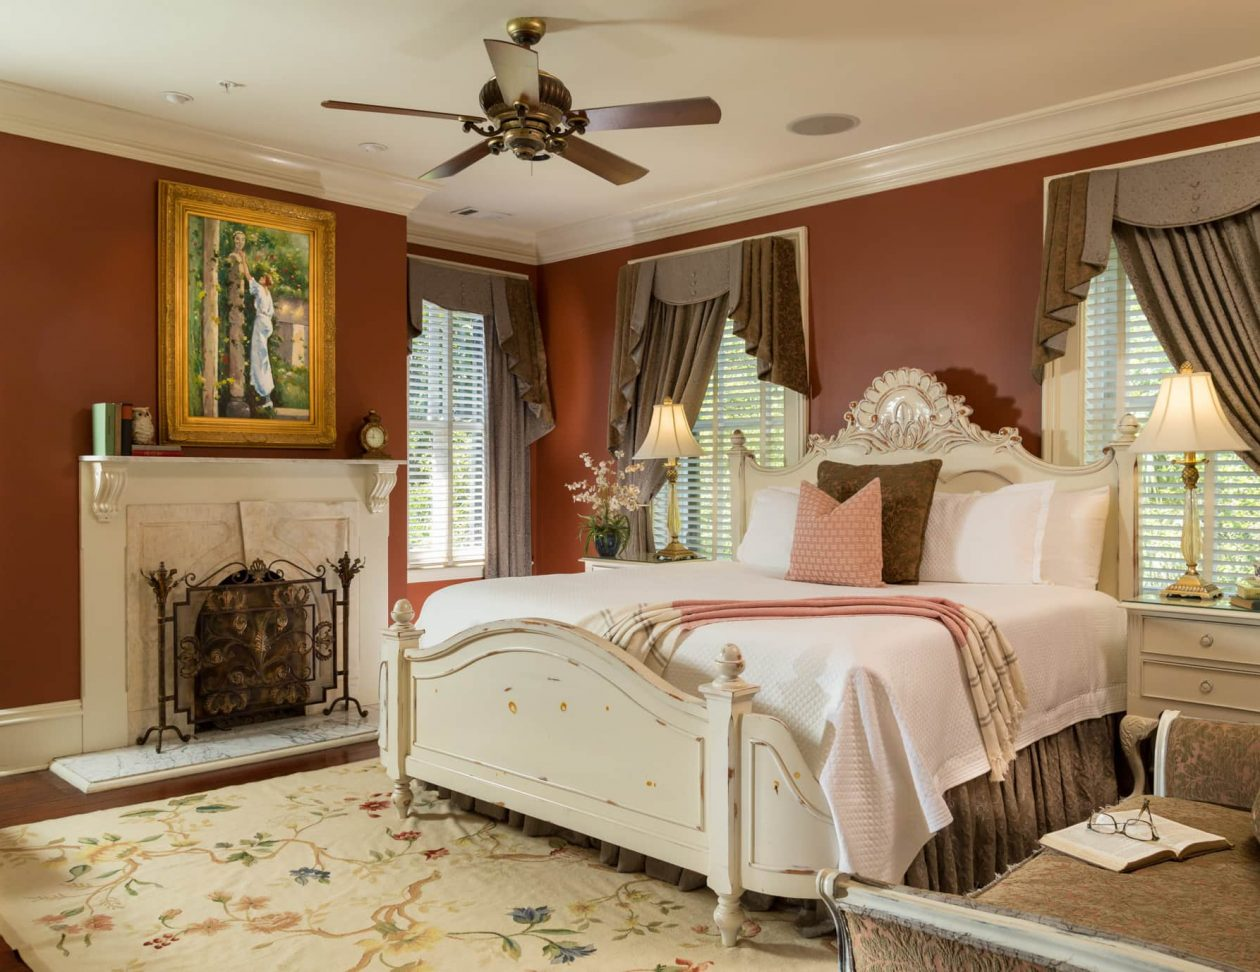 King bed in a room with a fireplace and a ceiling fan